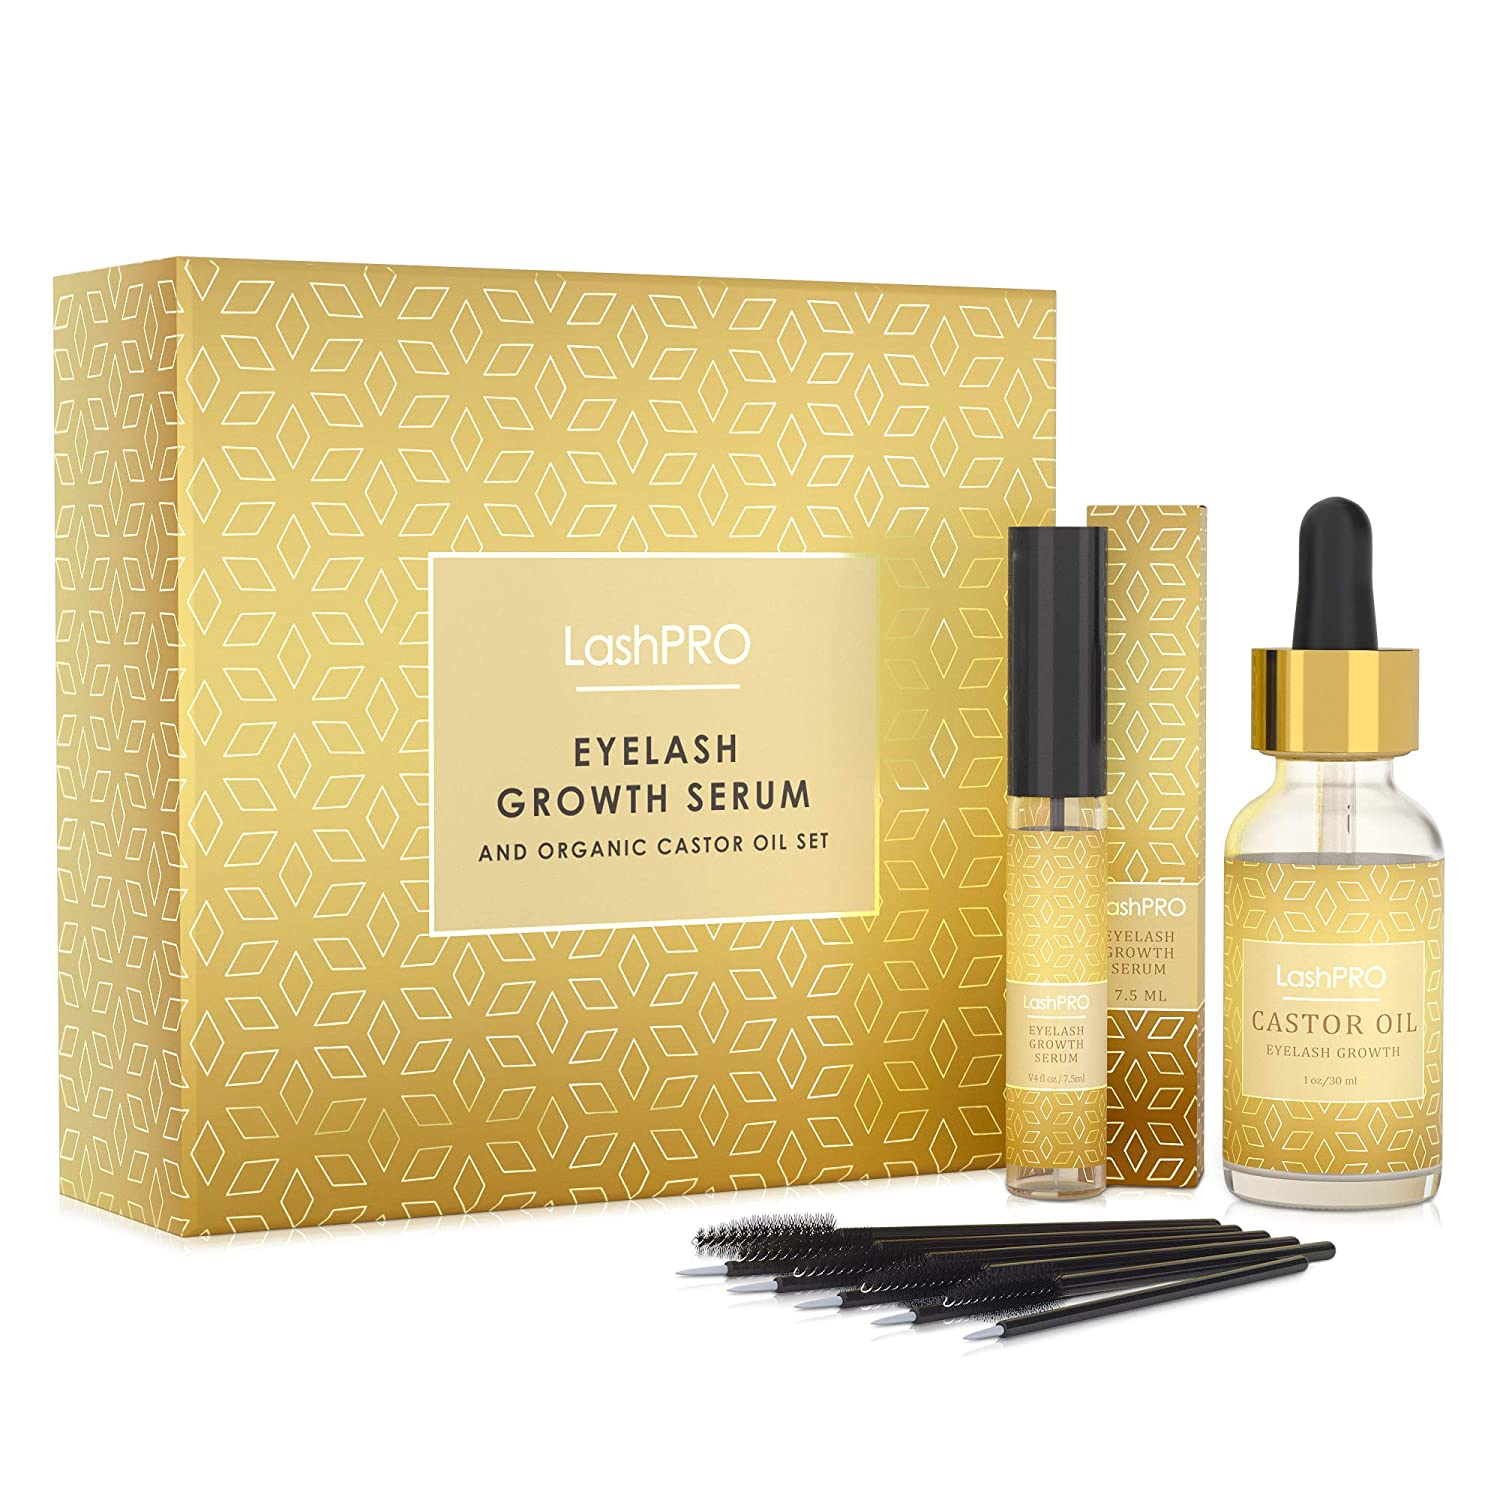 Eyelash Growth Enhancer & Brow Serum with Biotin & Natural Growth Peptides for Long, Thick Lashes and Eyebrows